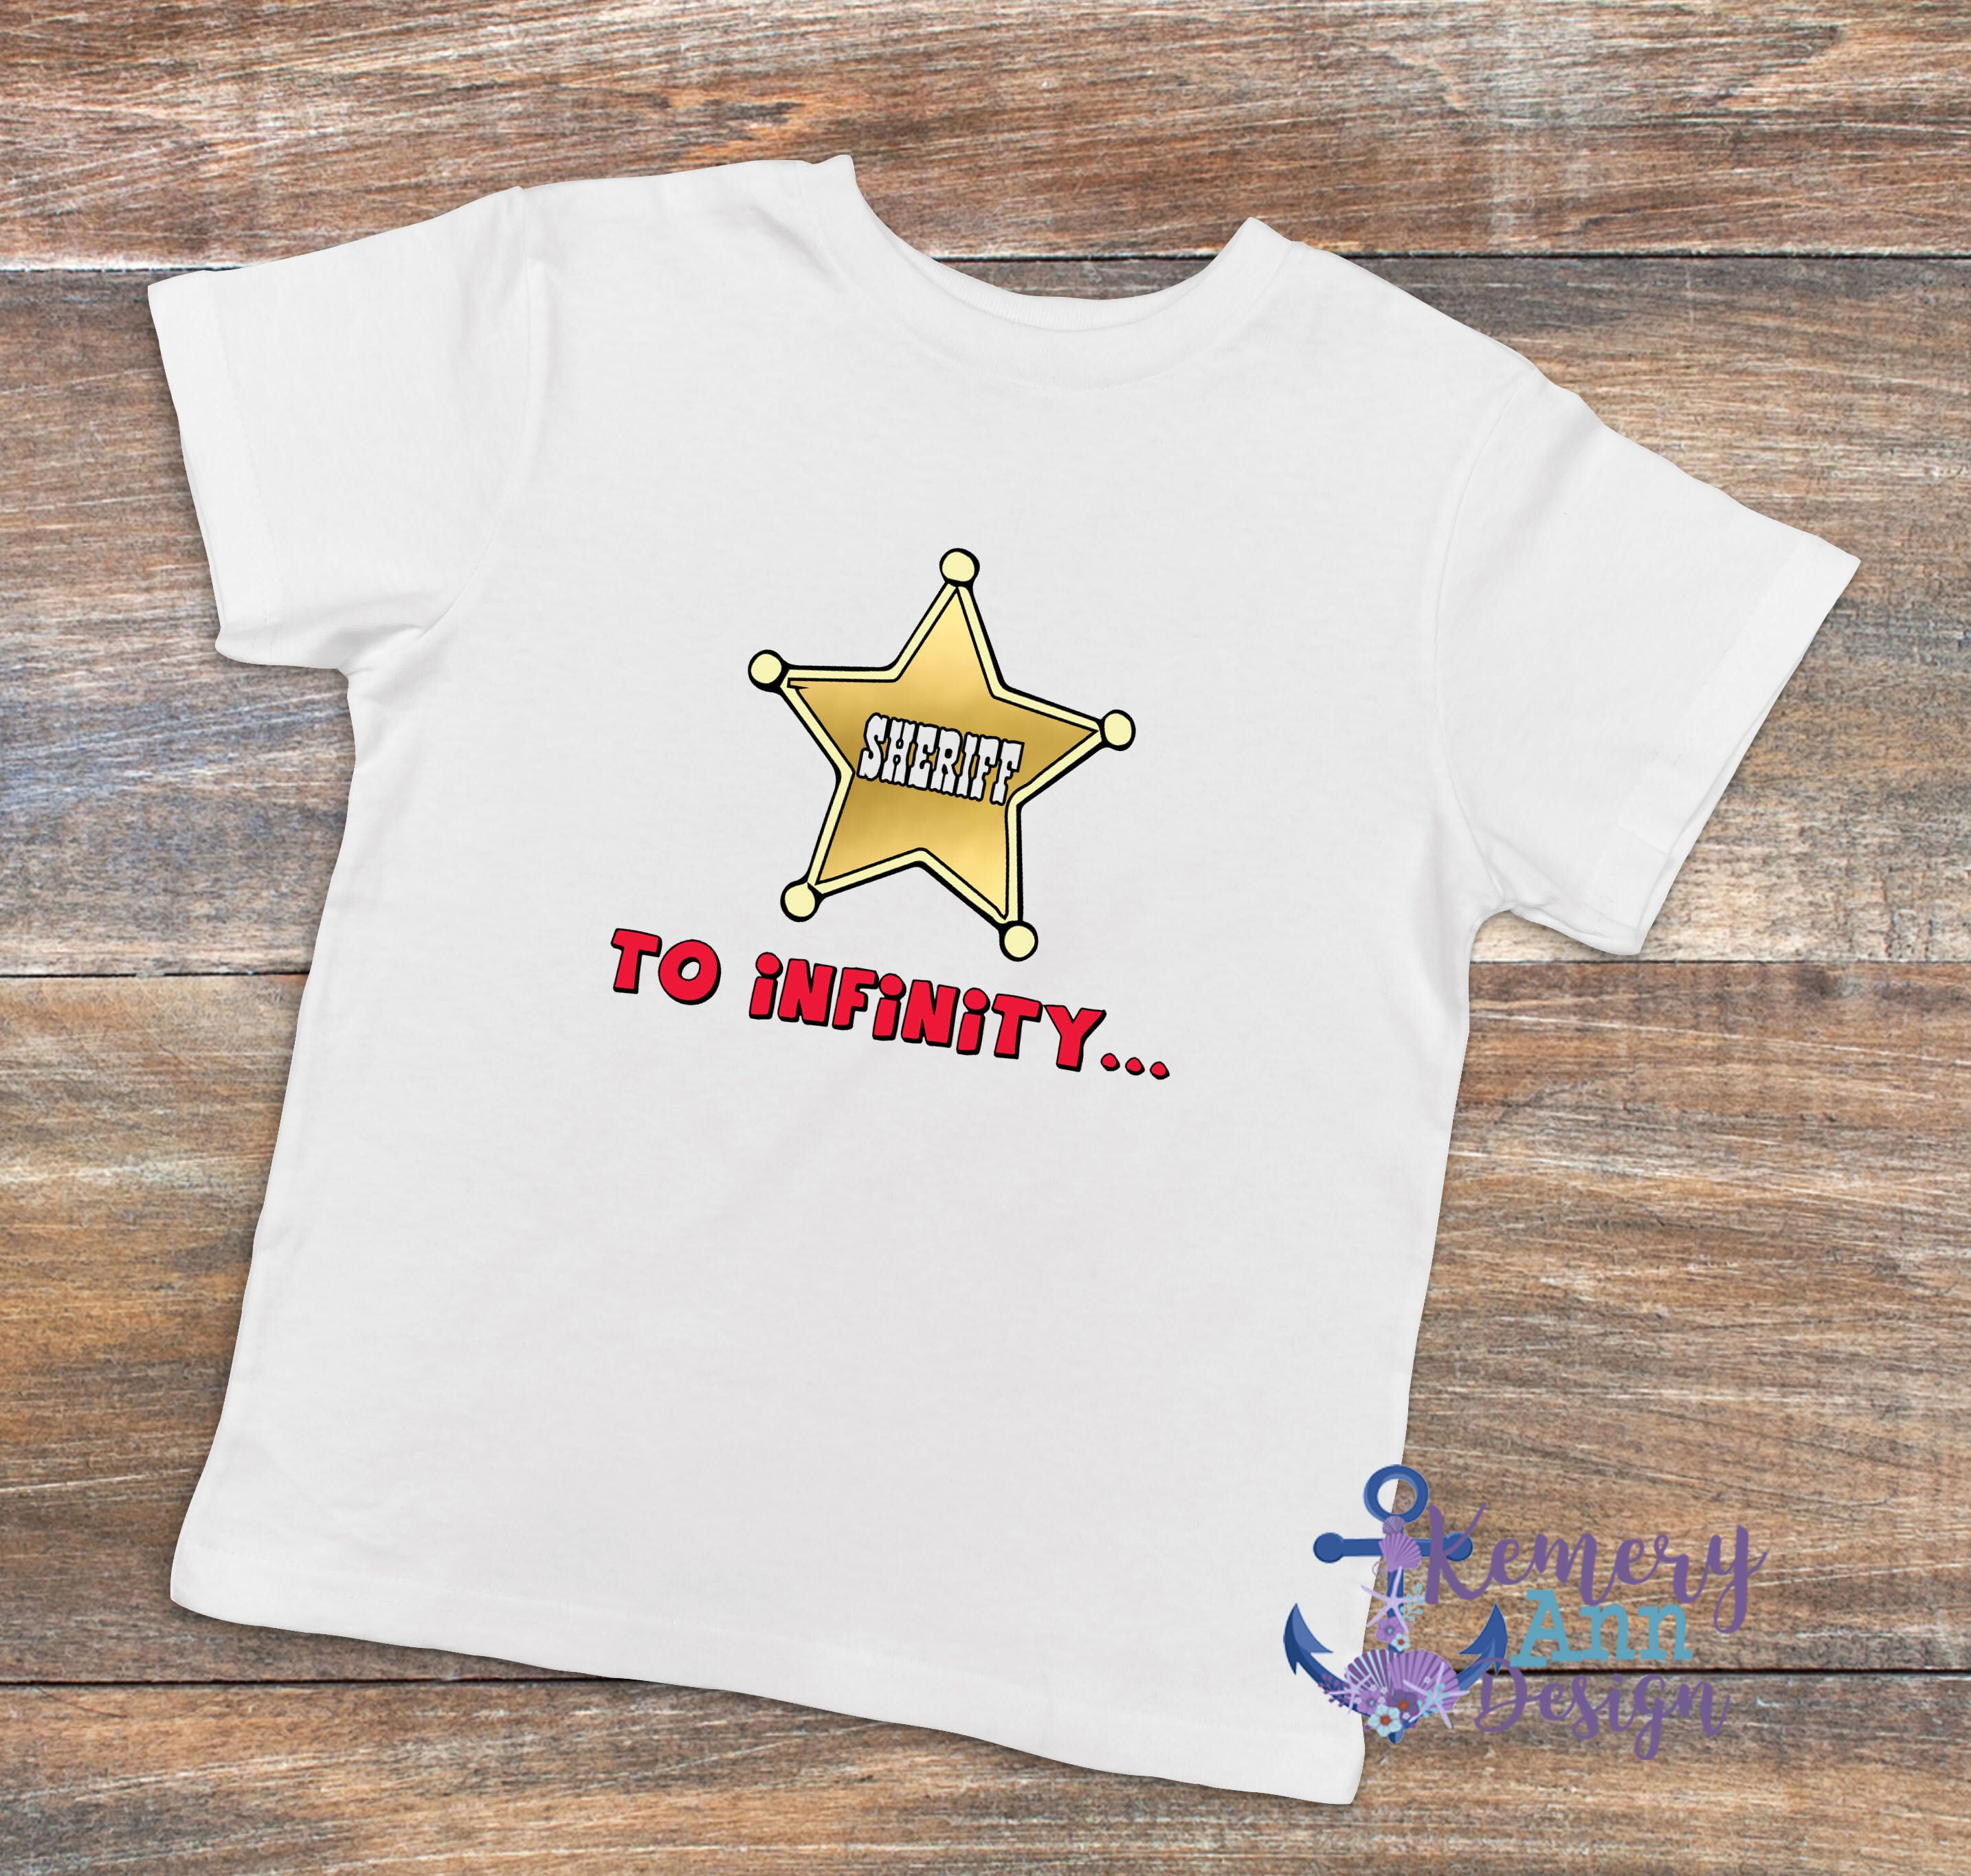 You've got a friend in me DUO SHIRTS, disney shirts, toy story shirts, buzz and woody, to infinity and beyond, friend shirts